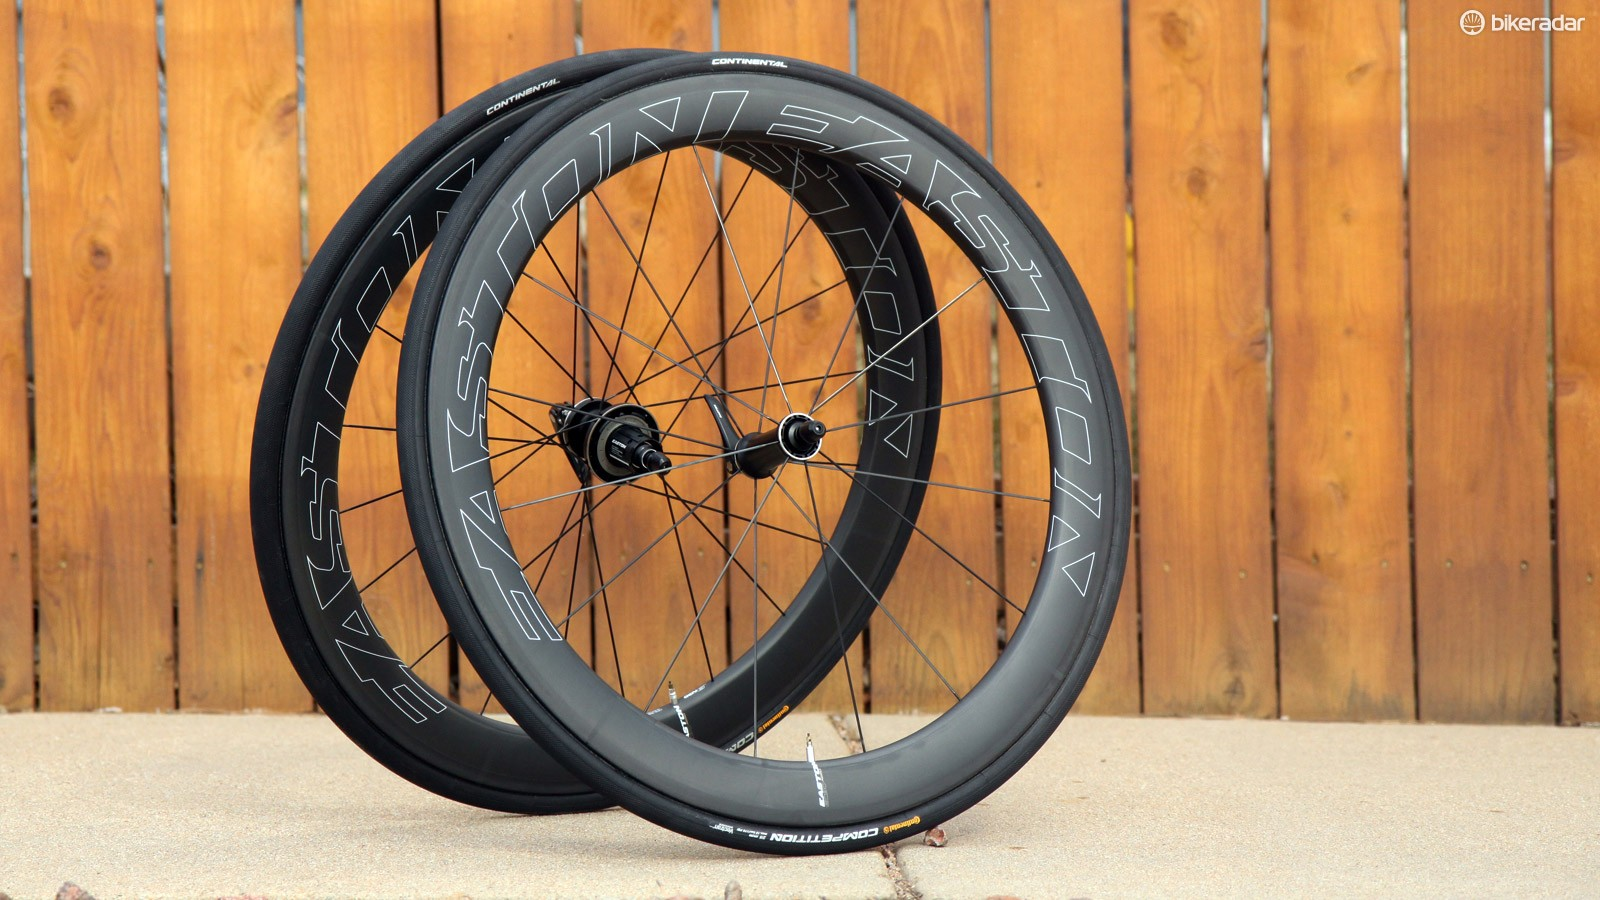 Easton's new EC90 Aero 55 carbon tubulars are wickedly fast and very light